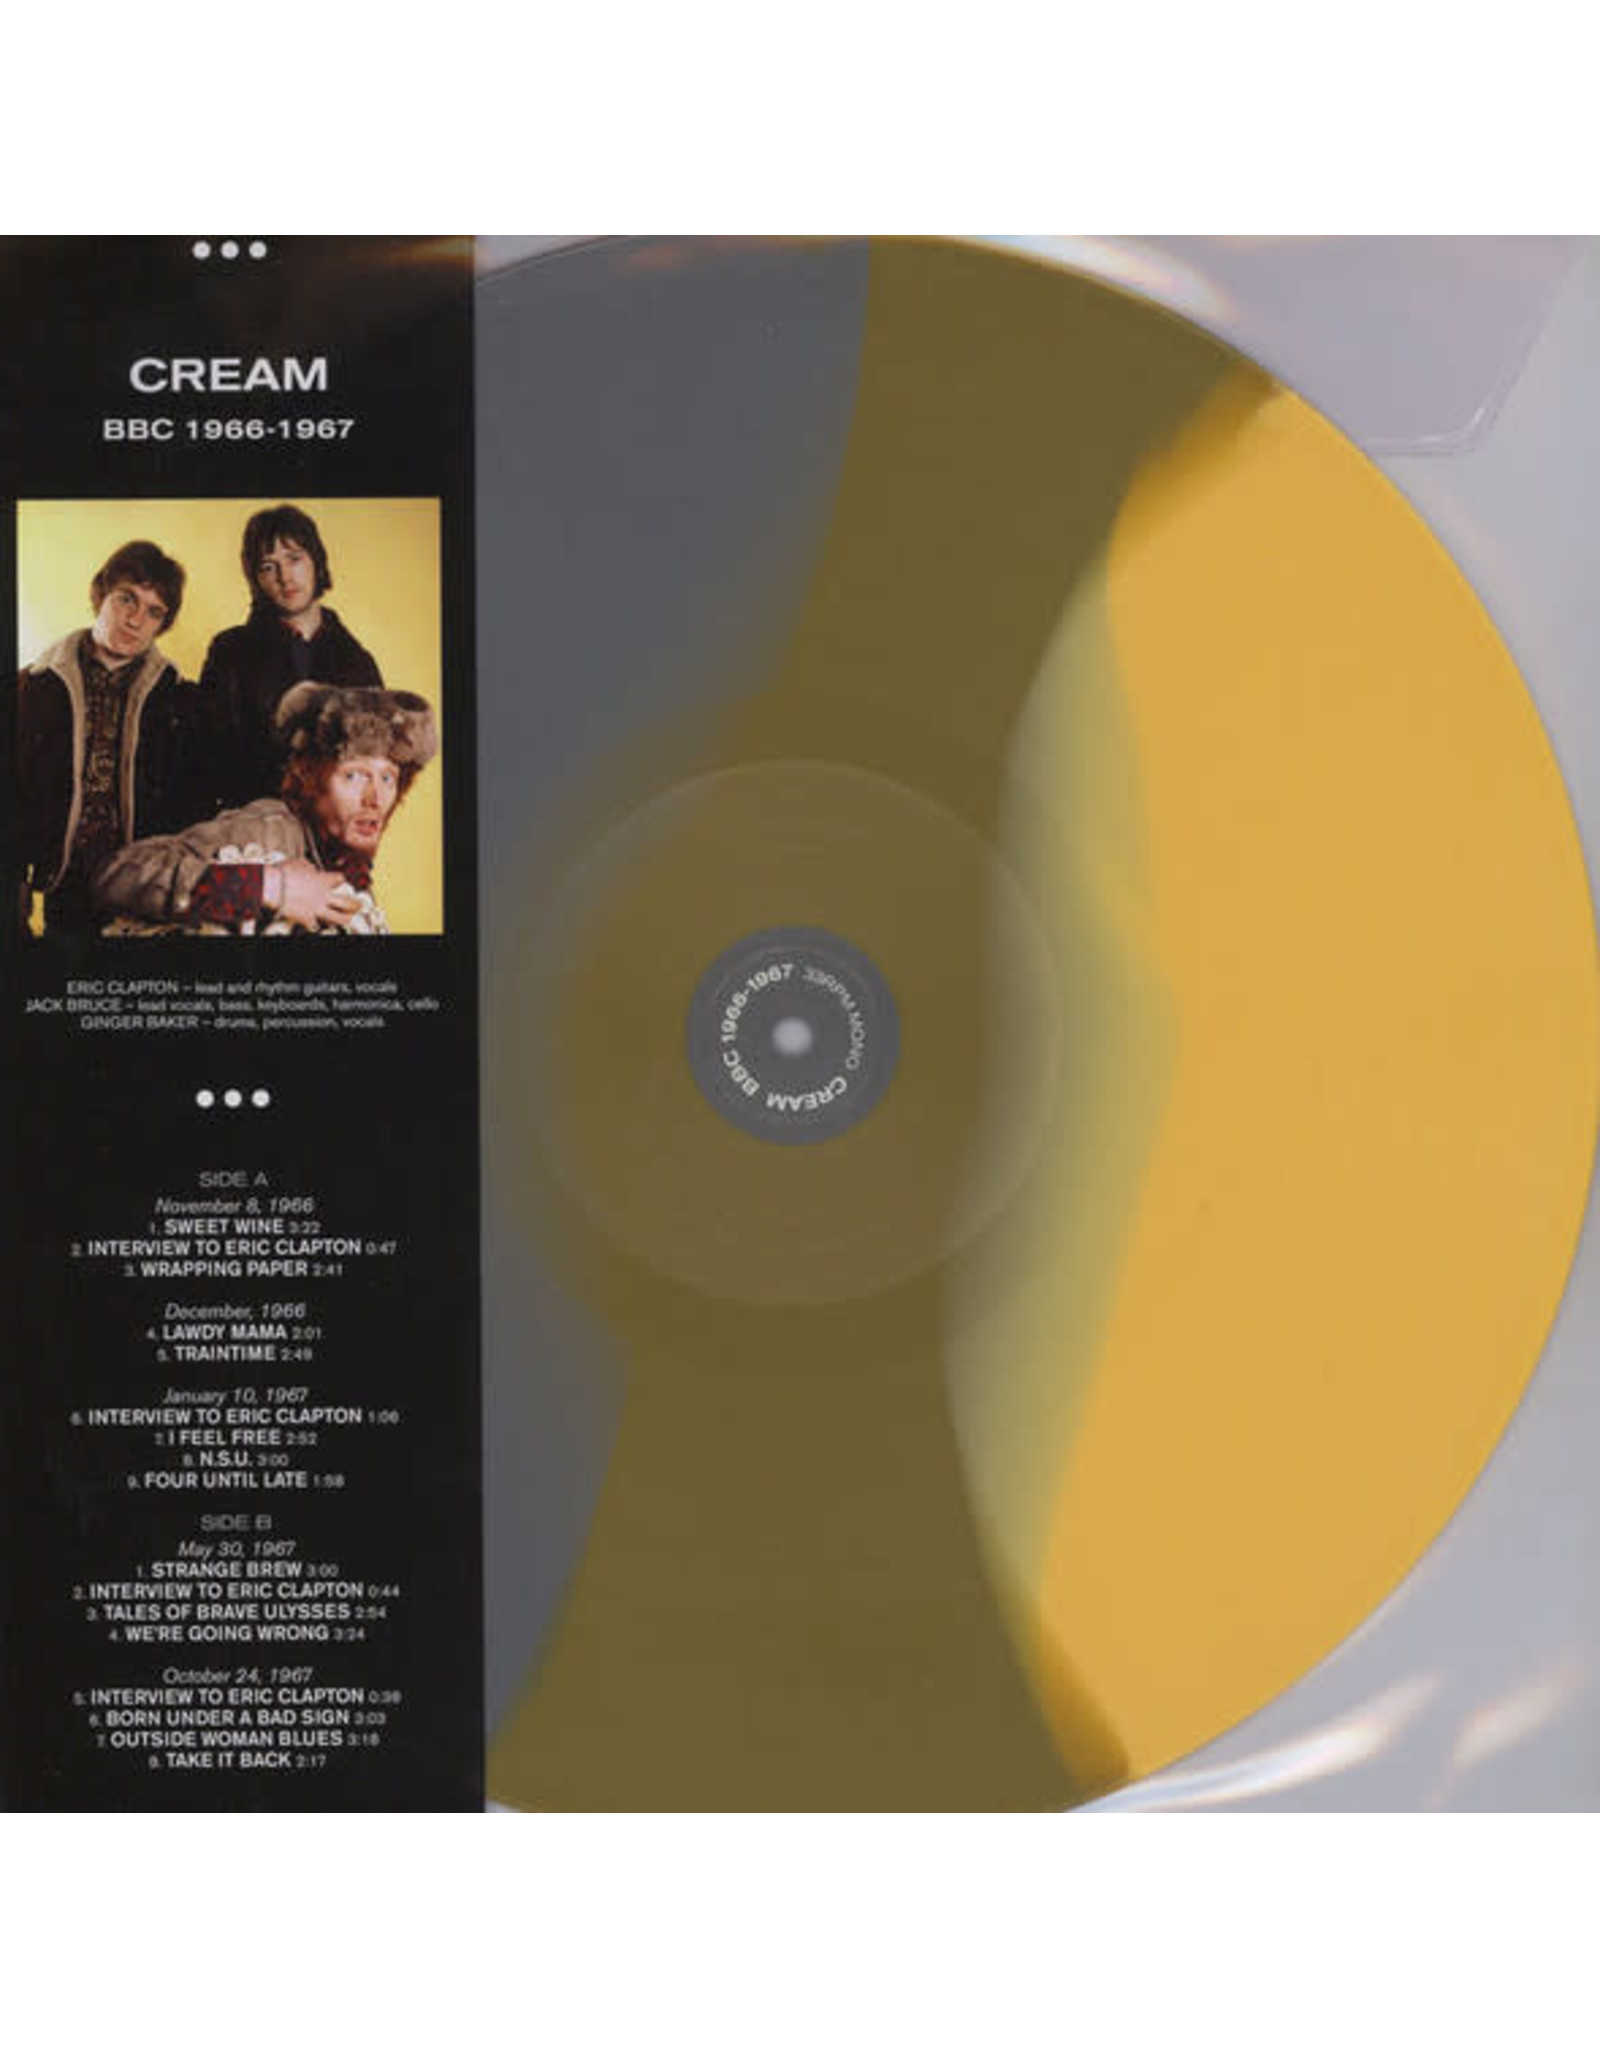 Vinyl Cream - BBC 1966-1967 (Ltd Colour Vinyl). Final Sale